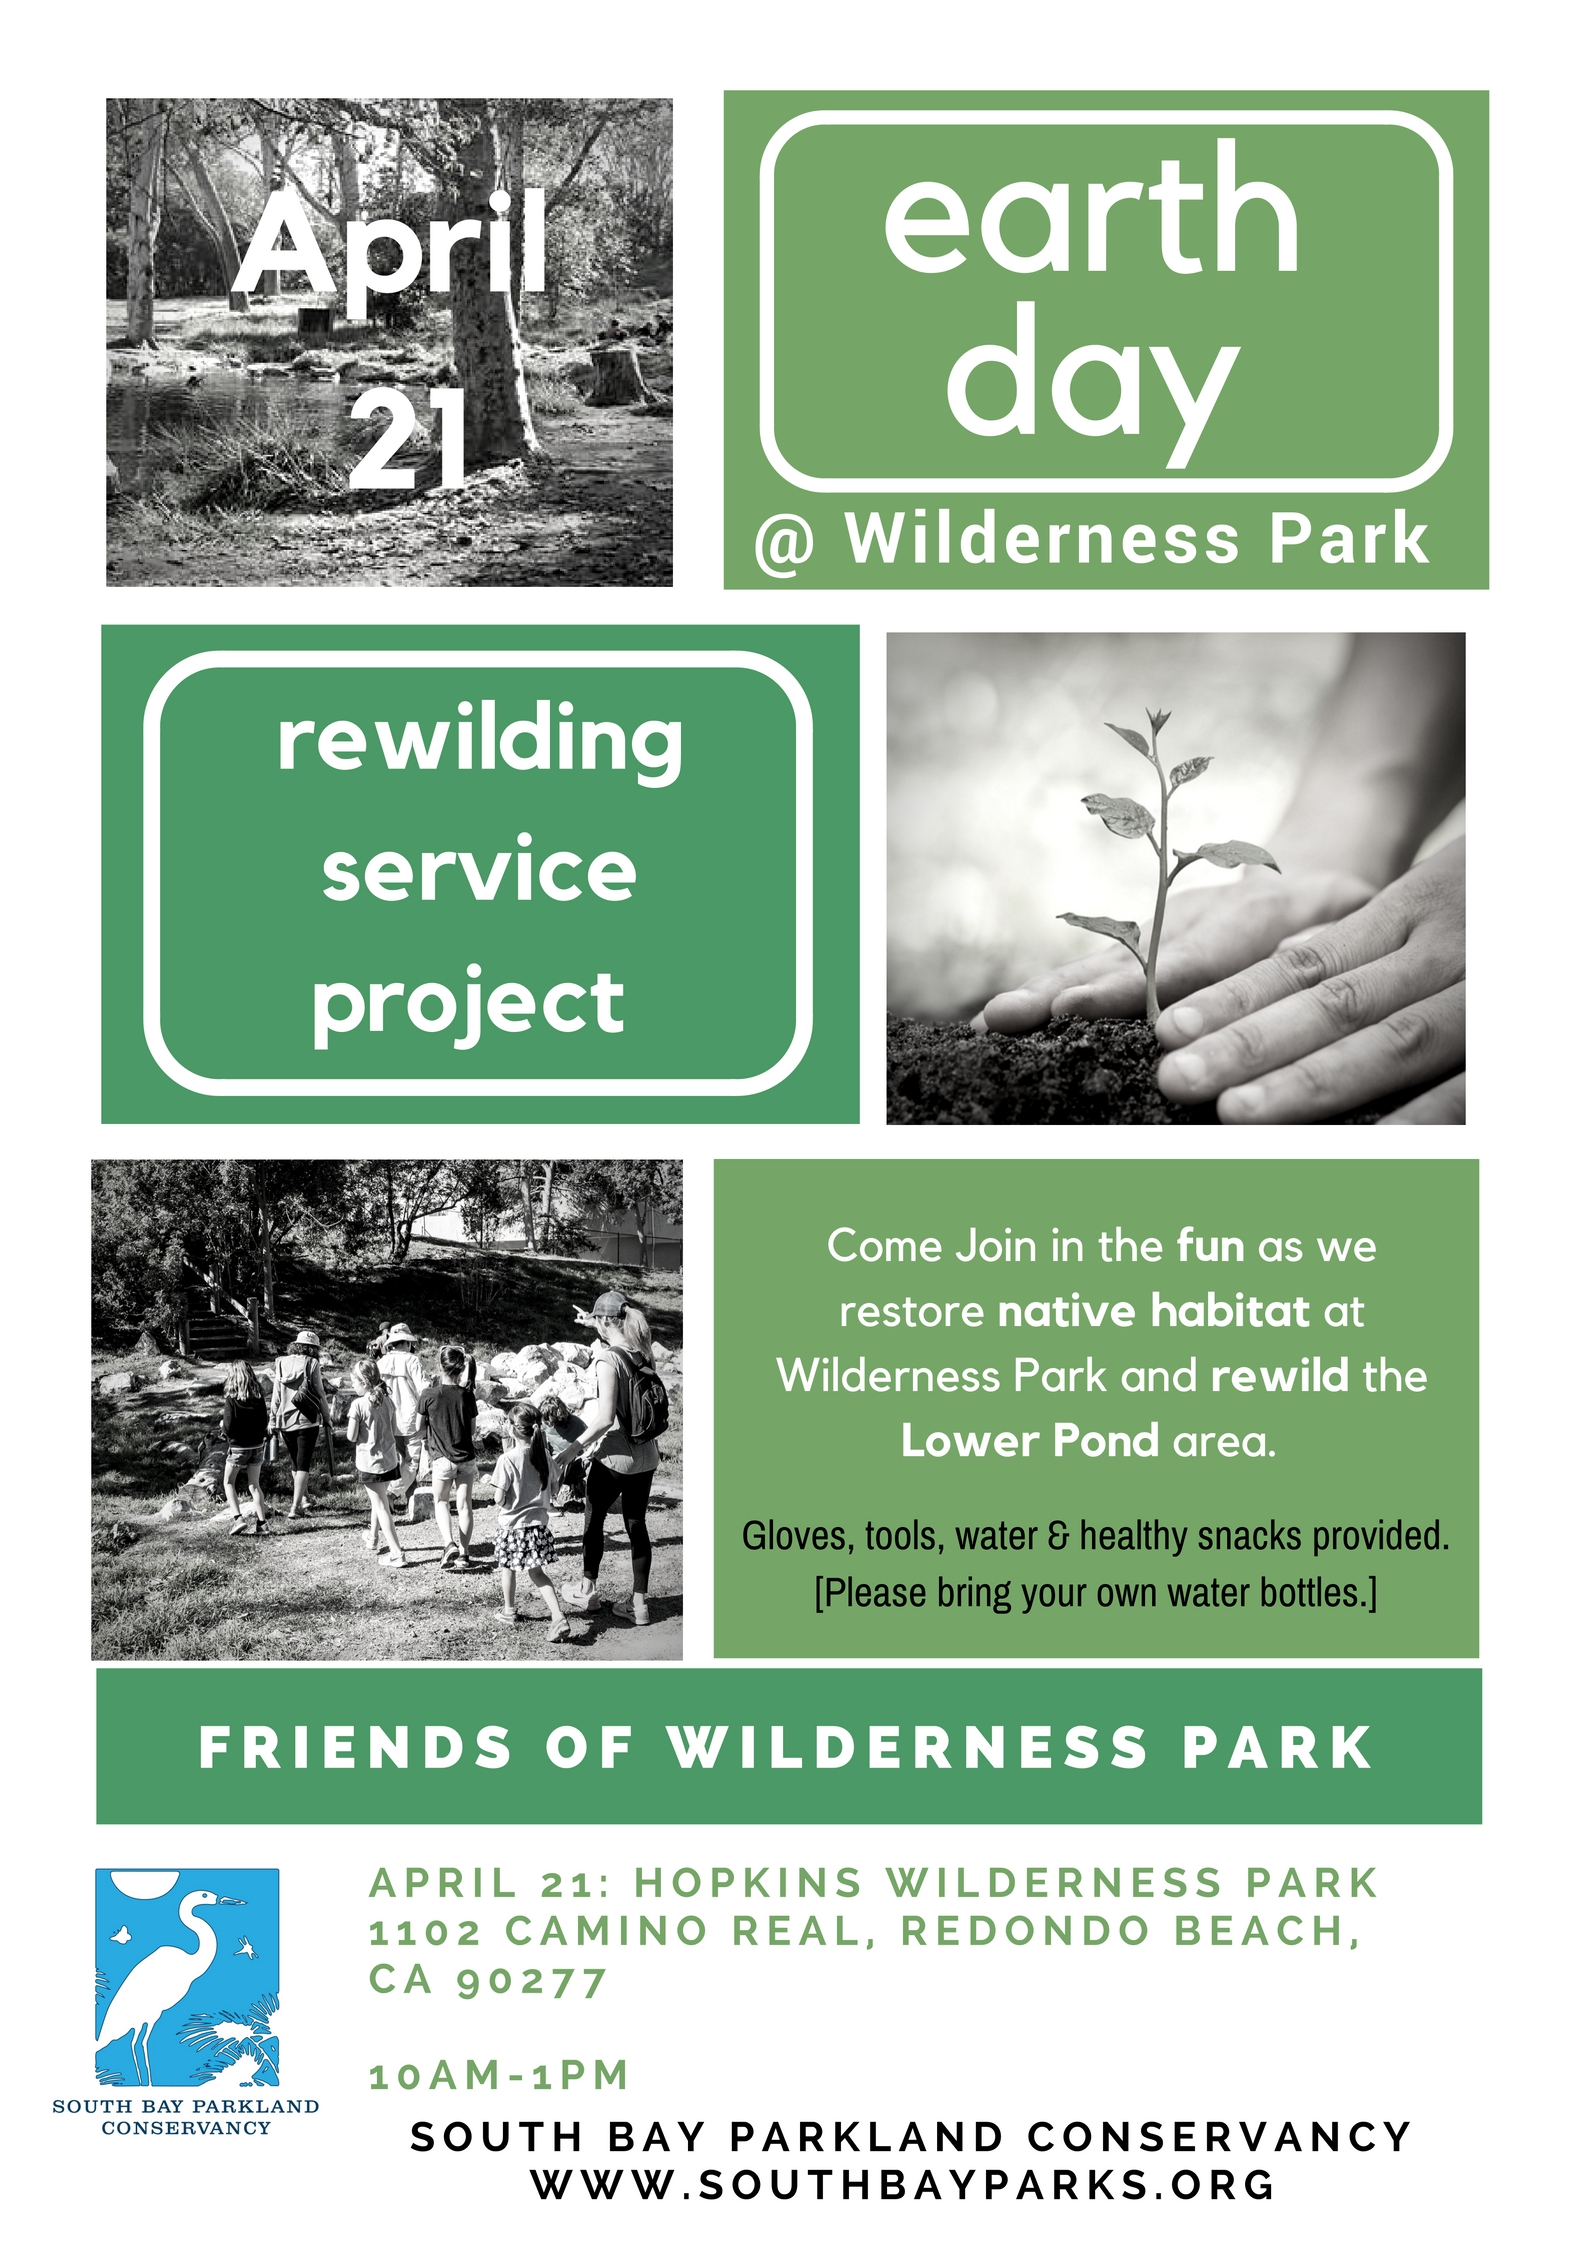 earth day service project (2).jpg